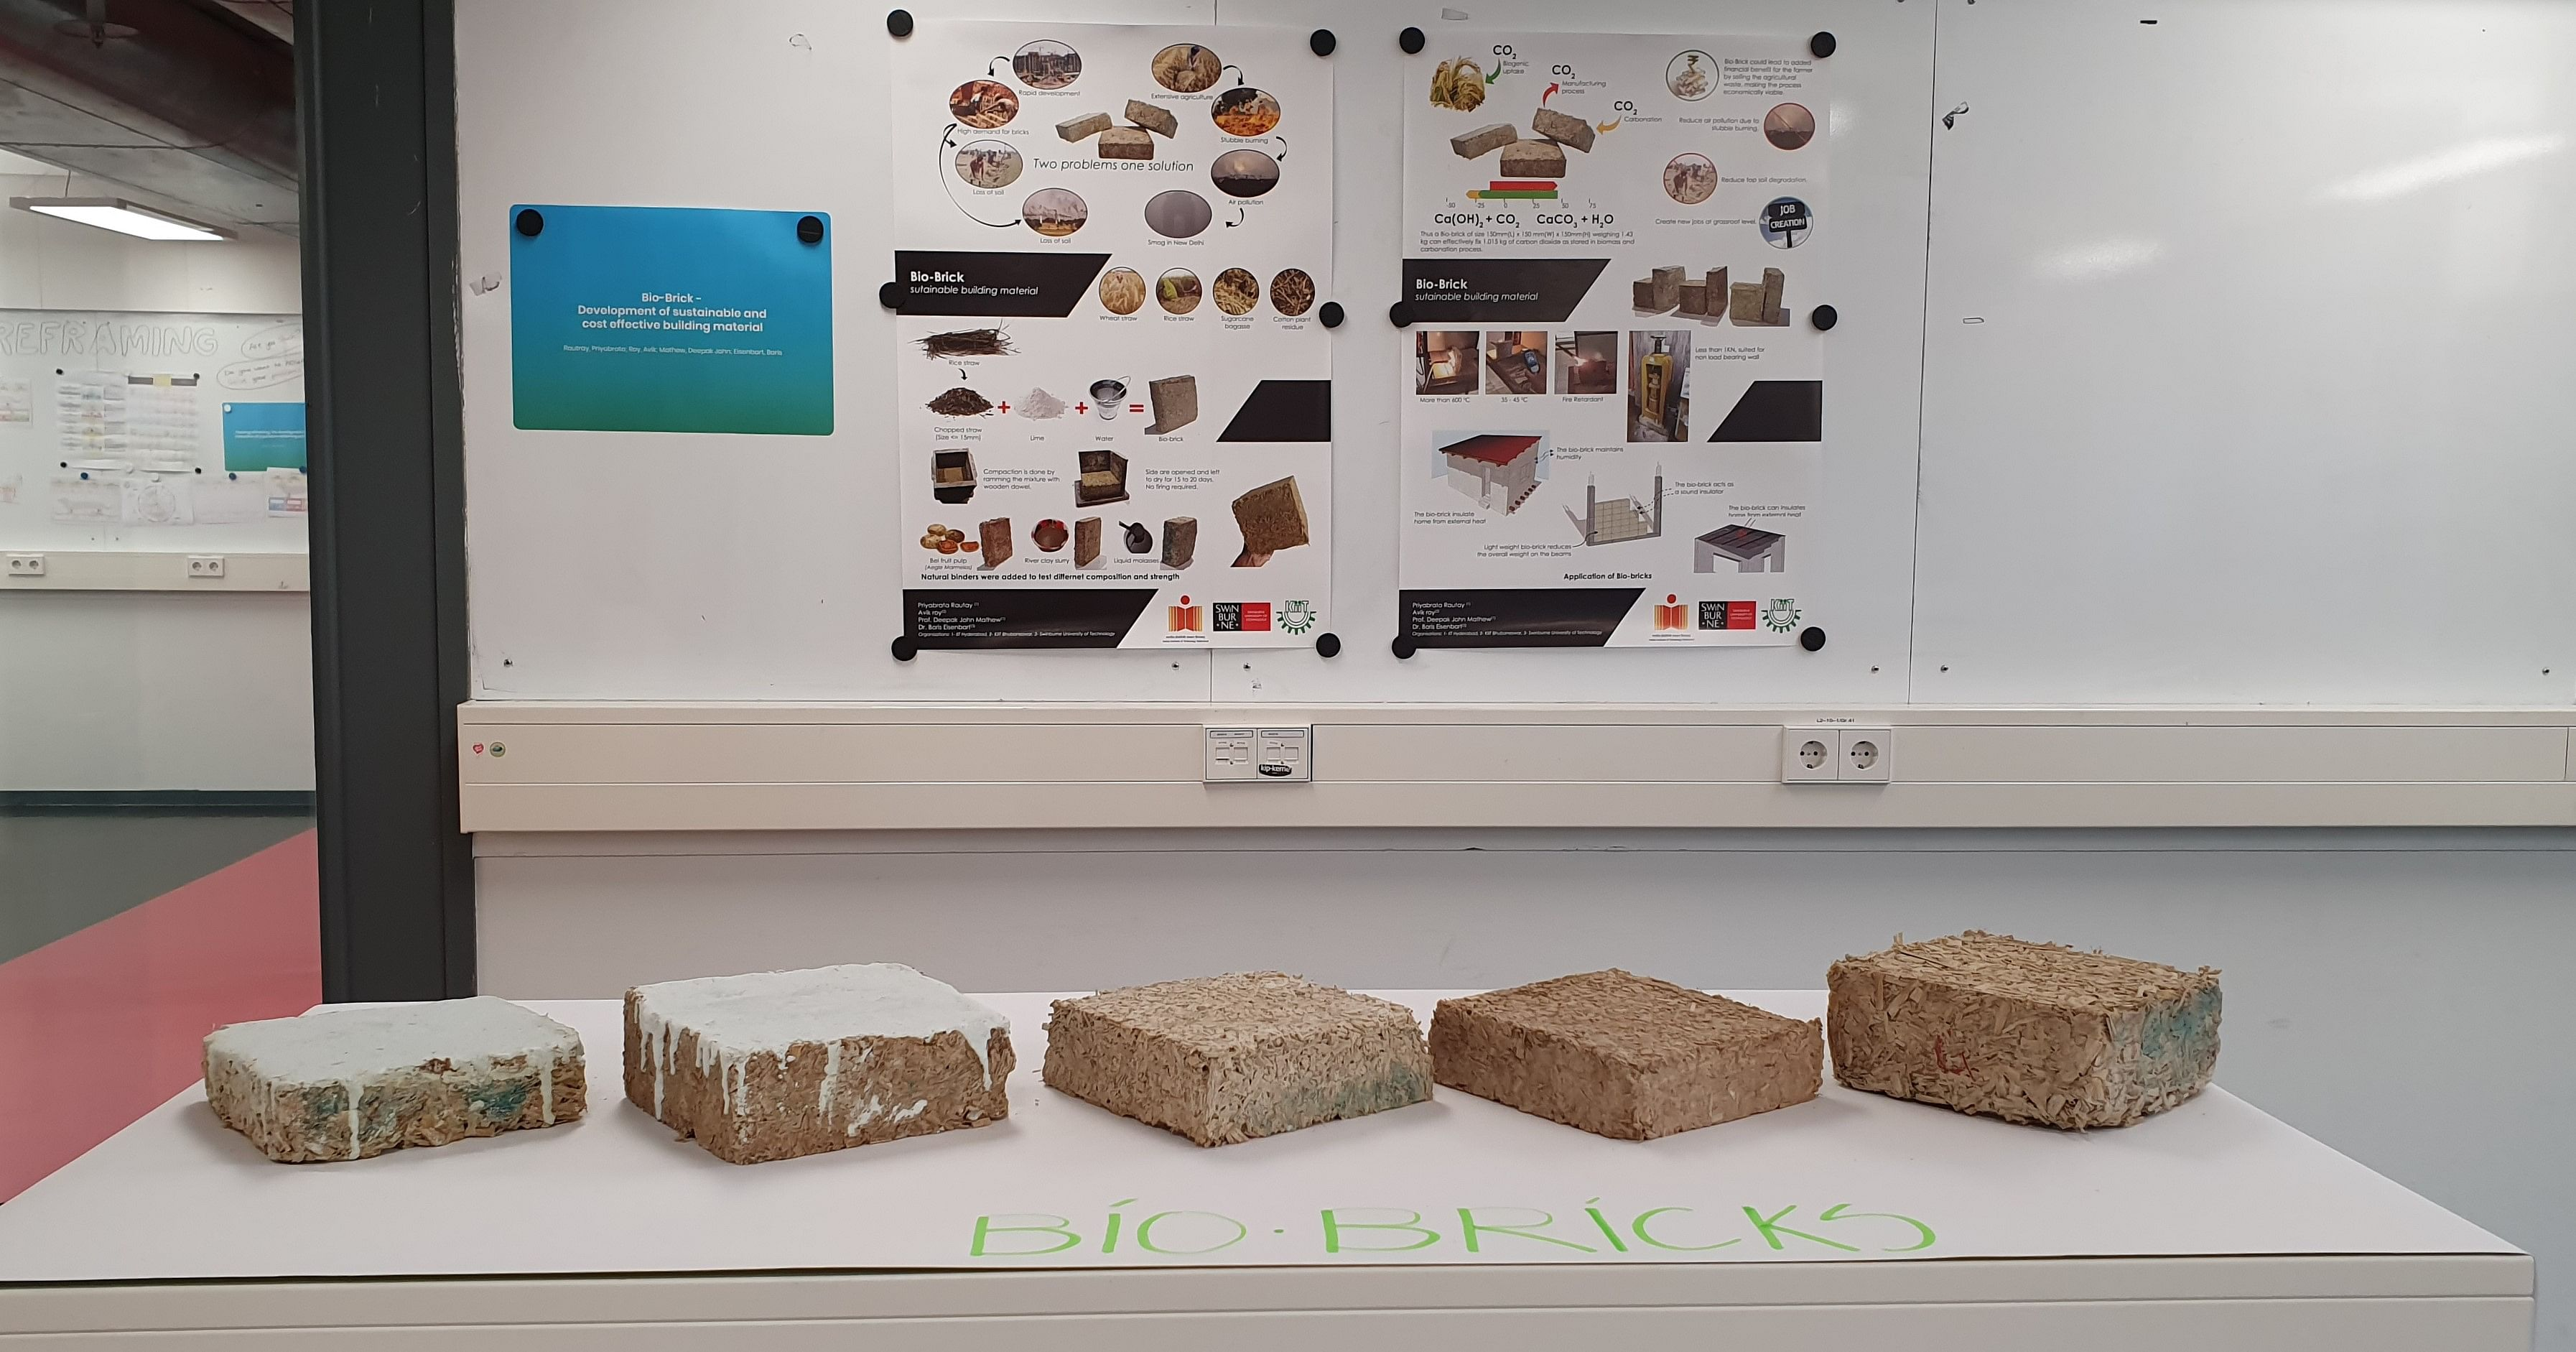 The 'Bio-Bricks' developed from Agricultural Waste Products by IIT Hyderabad and KIIT Bhubaneshwar Researchers. (Source: IIT-Hyderabad)